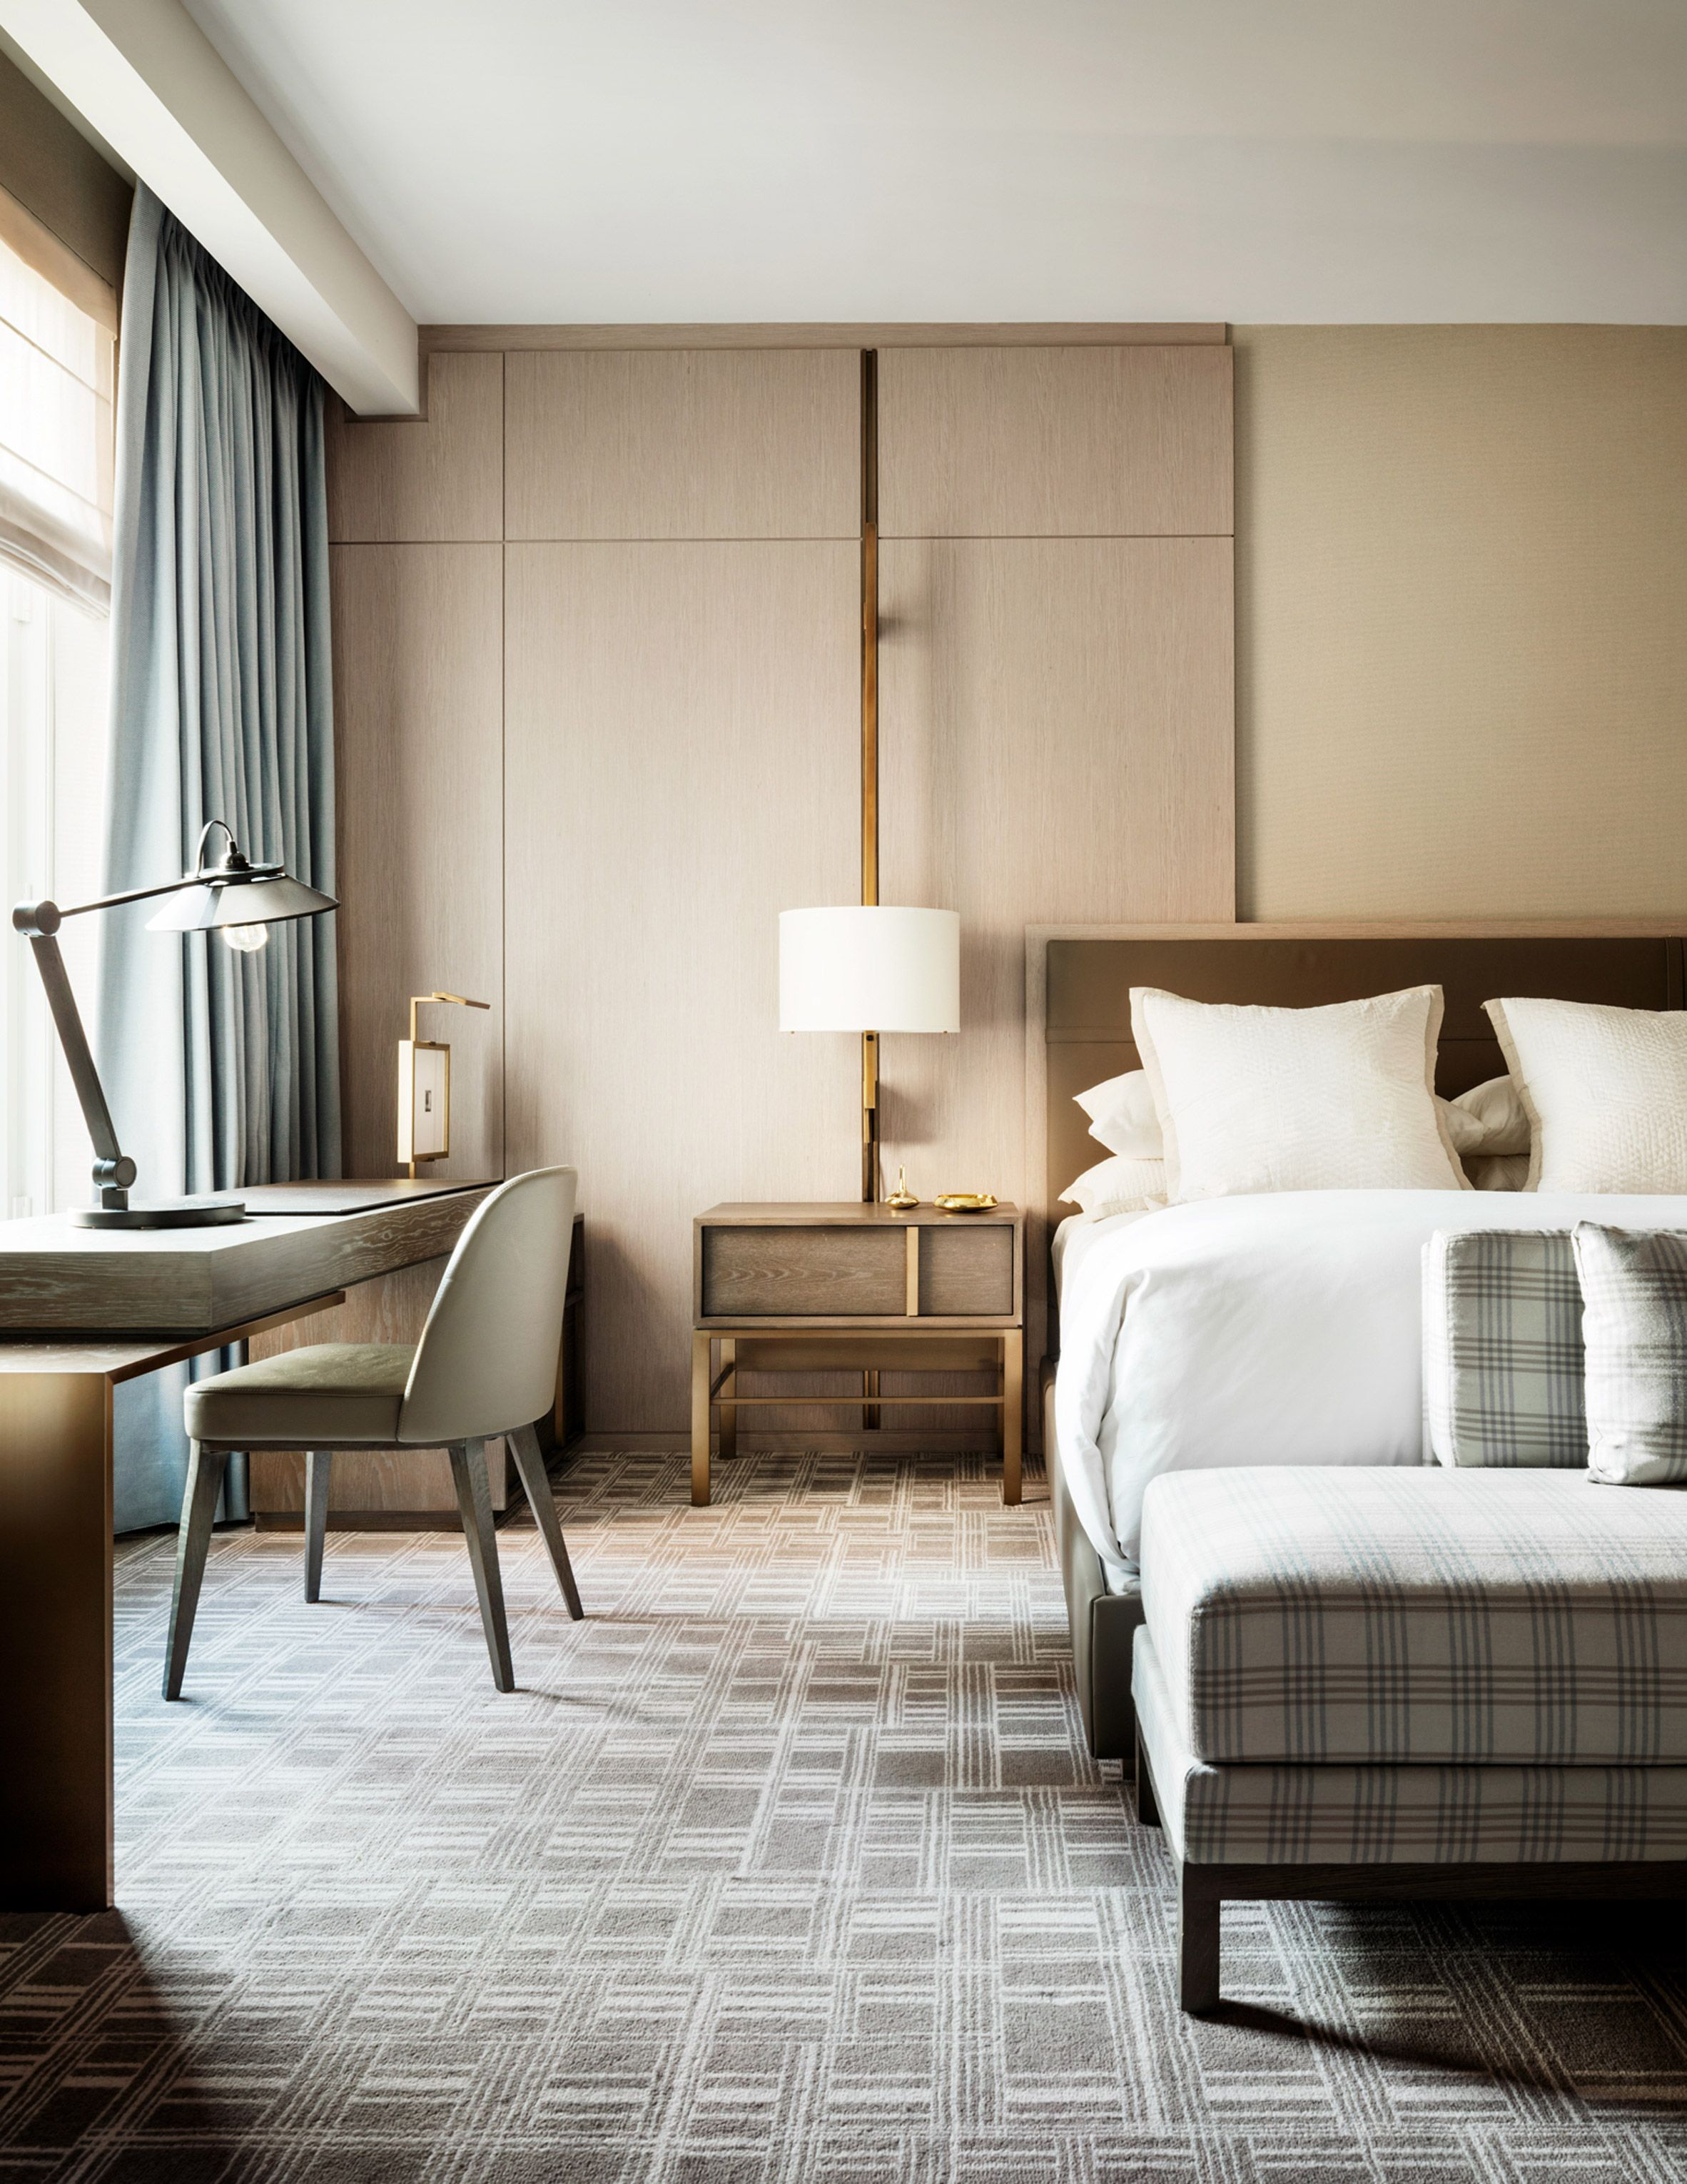 Interior Design Firms Yabu Pushelberg Uses Muted Hues At Four Seasons Downtown New York